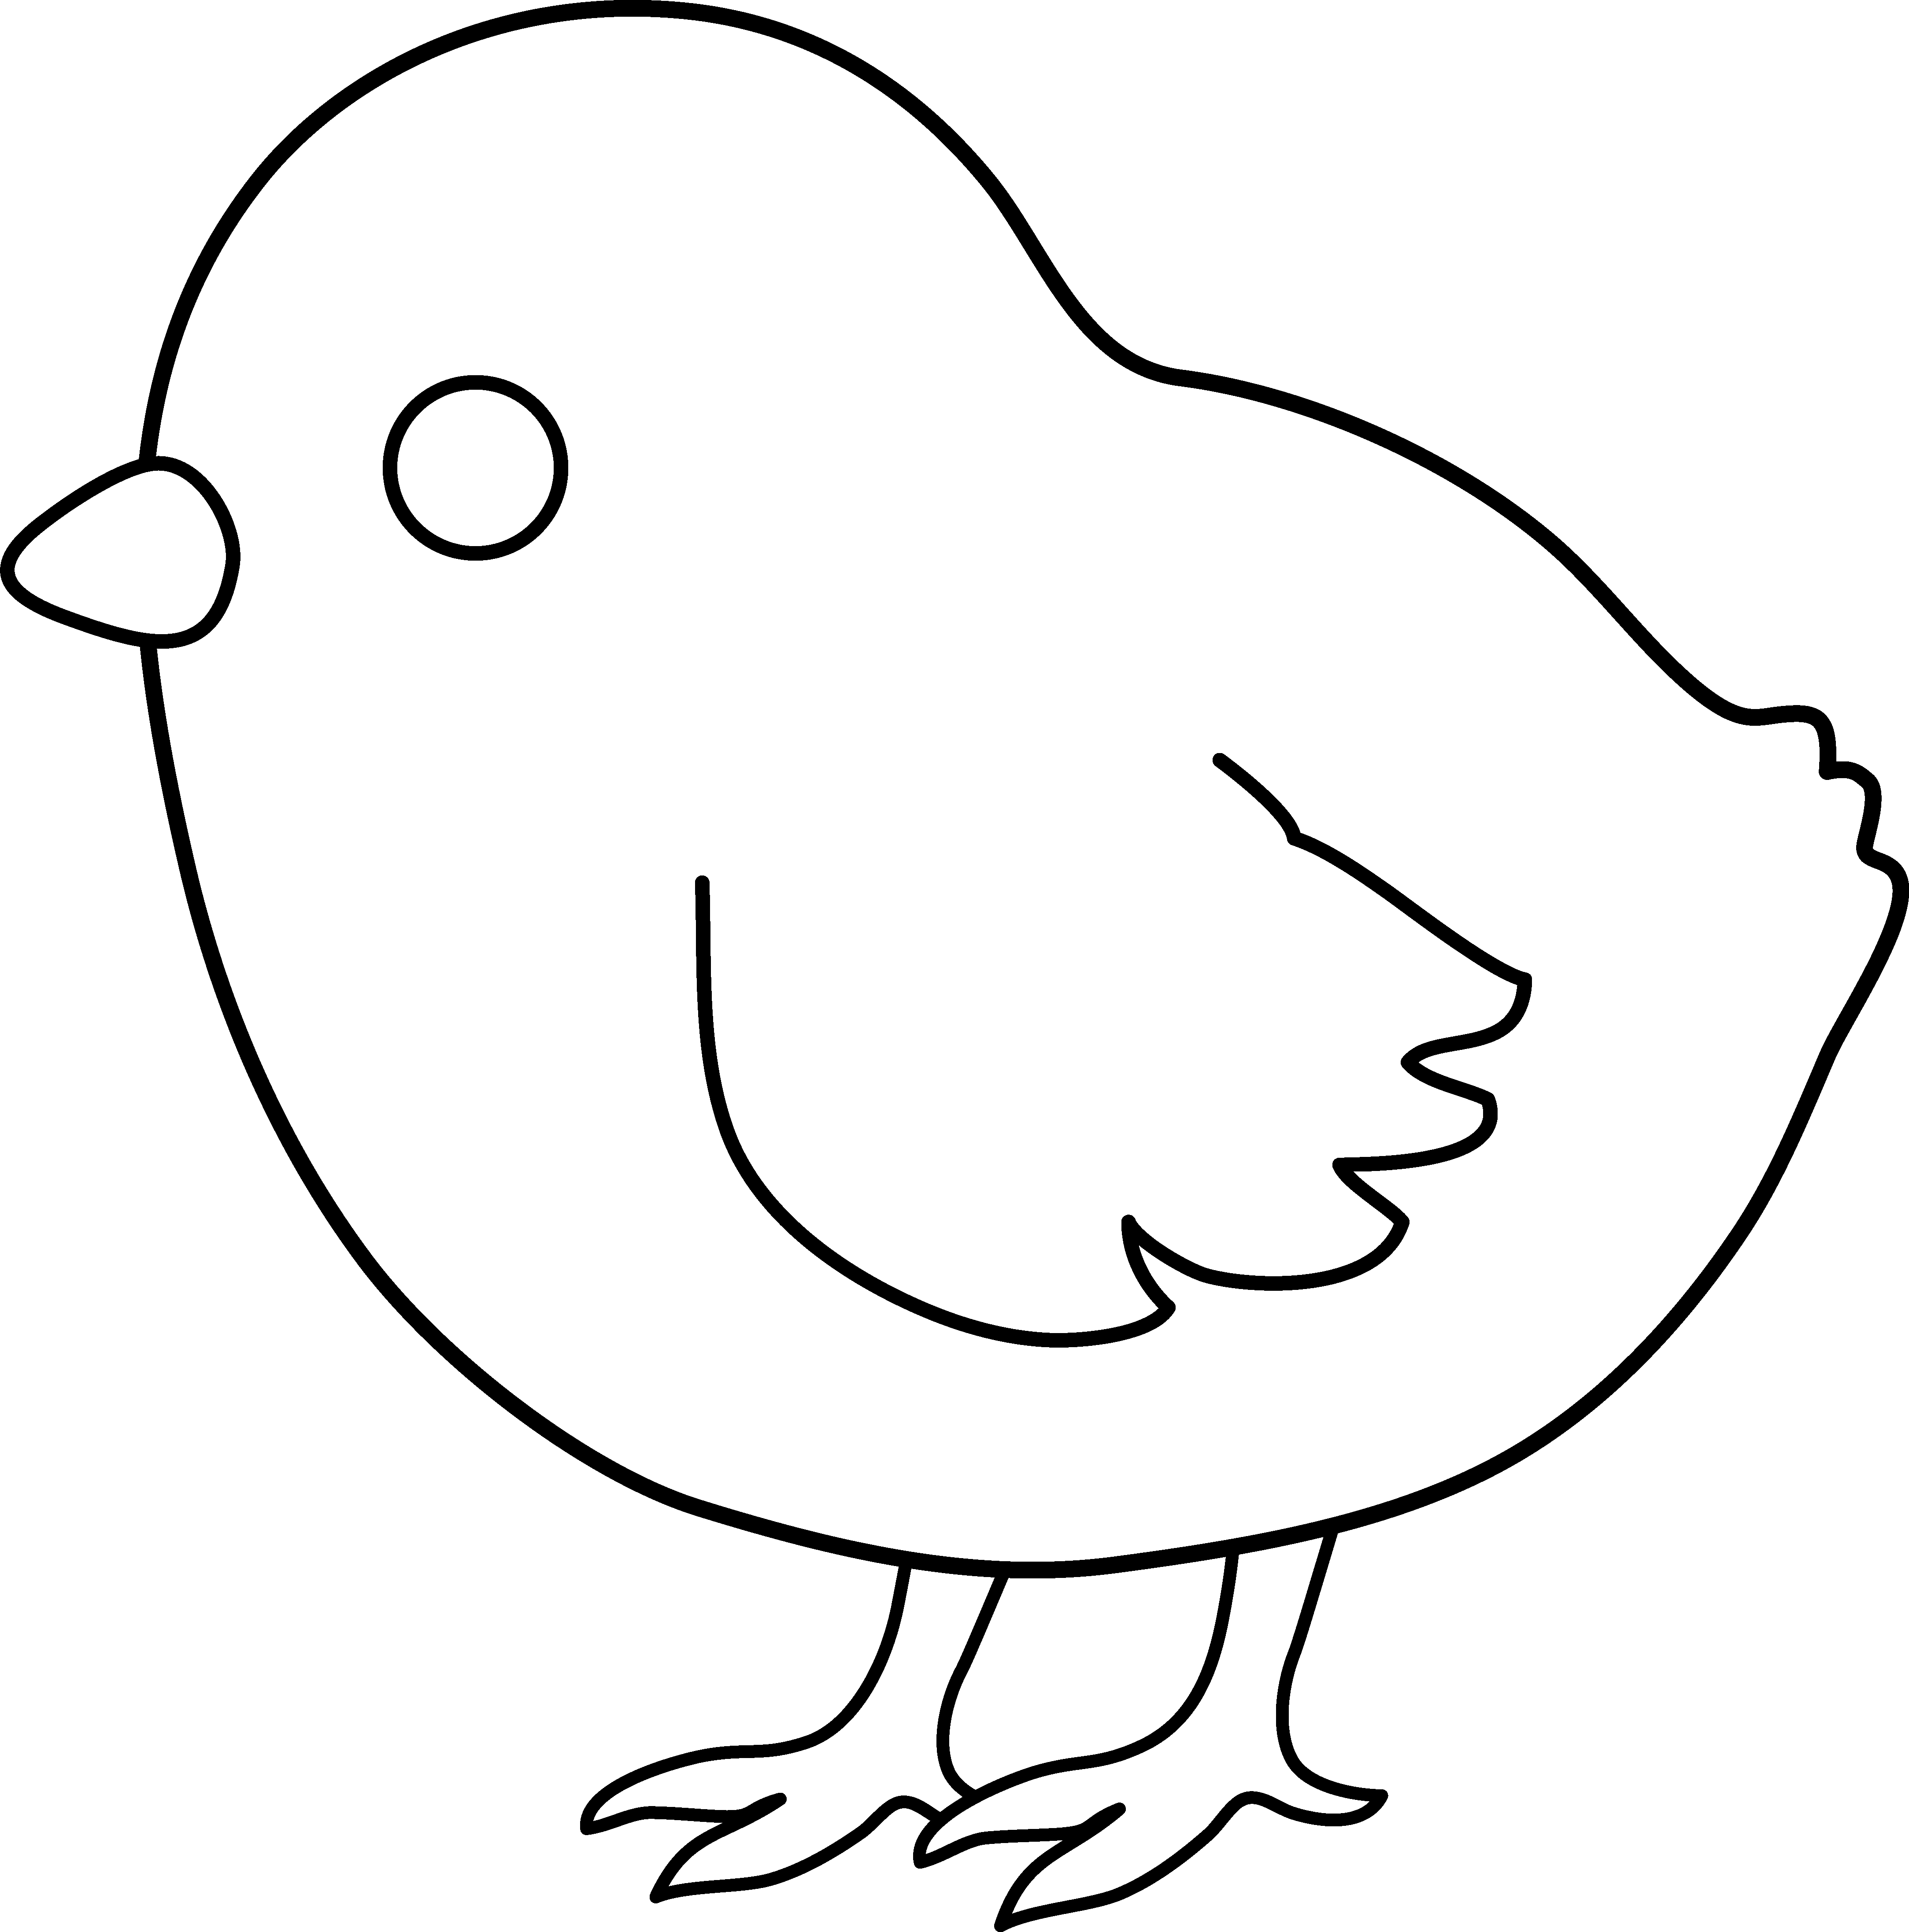 Cute free black and white sun clipart graphic freeuse download Baby Chicken Clipart Black And White | Clipart Panda - Free Clipart ... graphic freeuse download